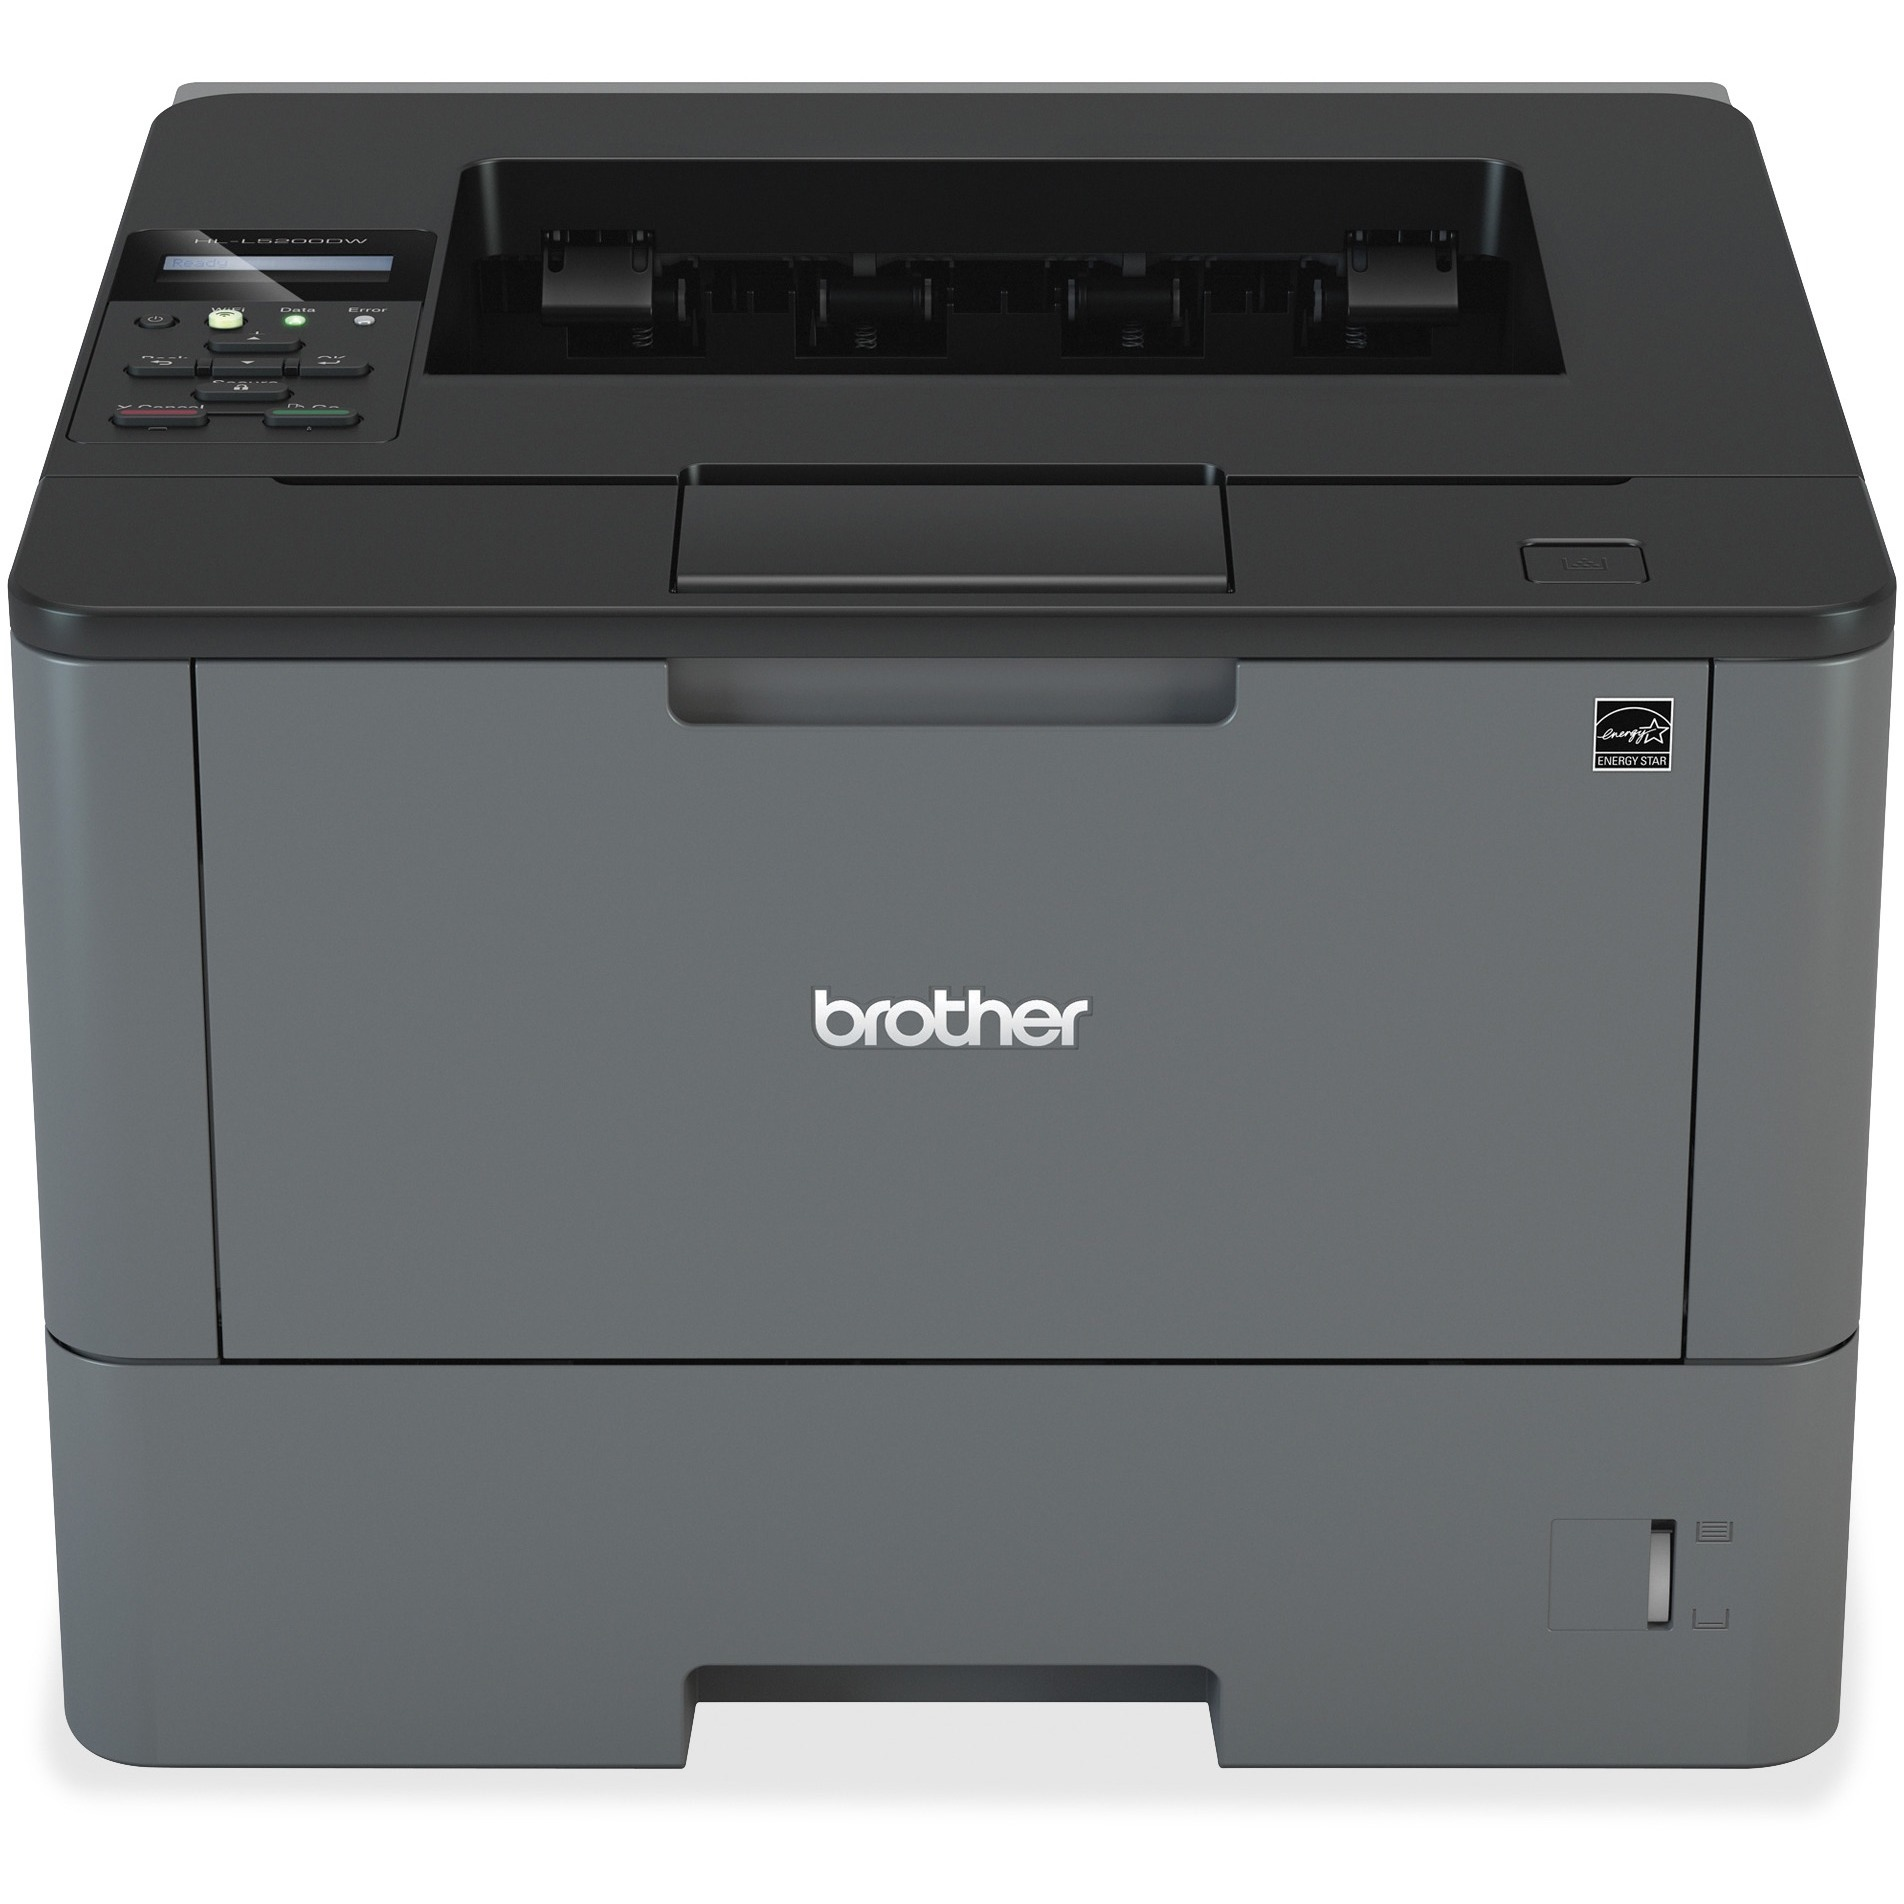 Brother Monochrome Laser Printer, HL-L5100DN, Duplex Two-Sided Printing, Ethernet Network Interface, Mobile Printing